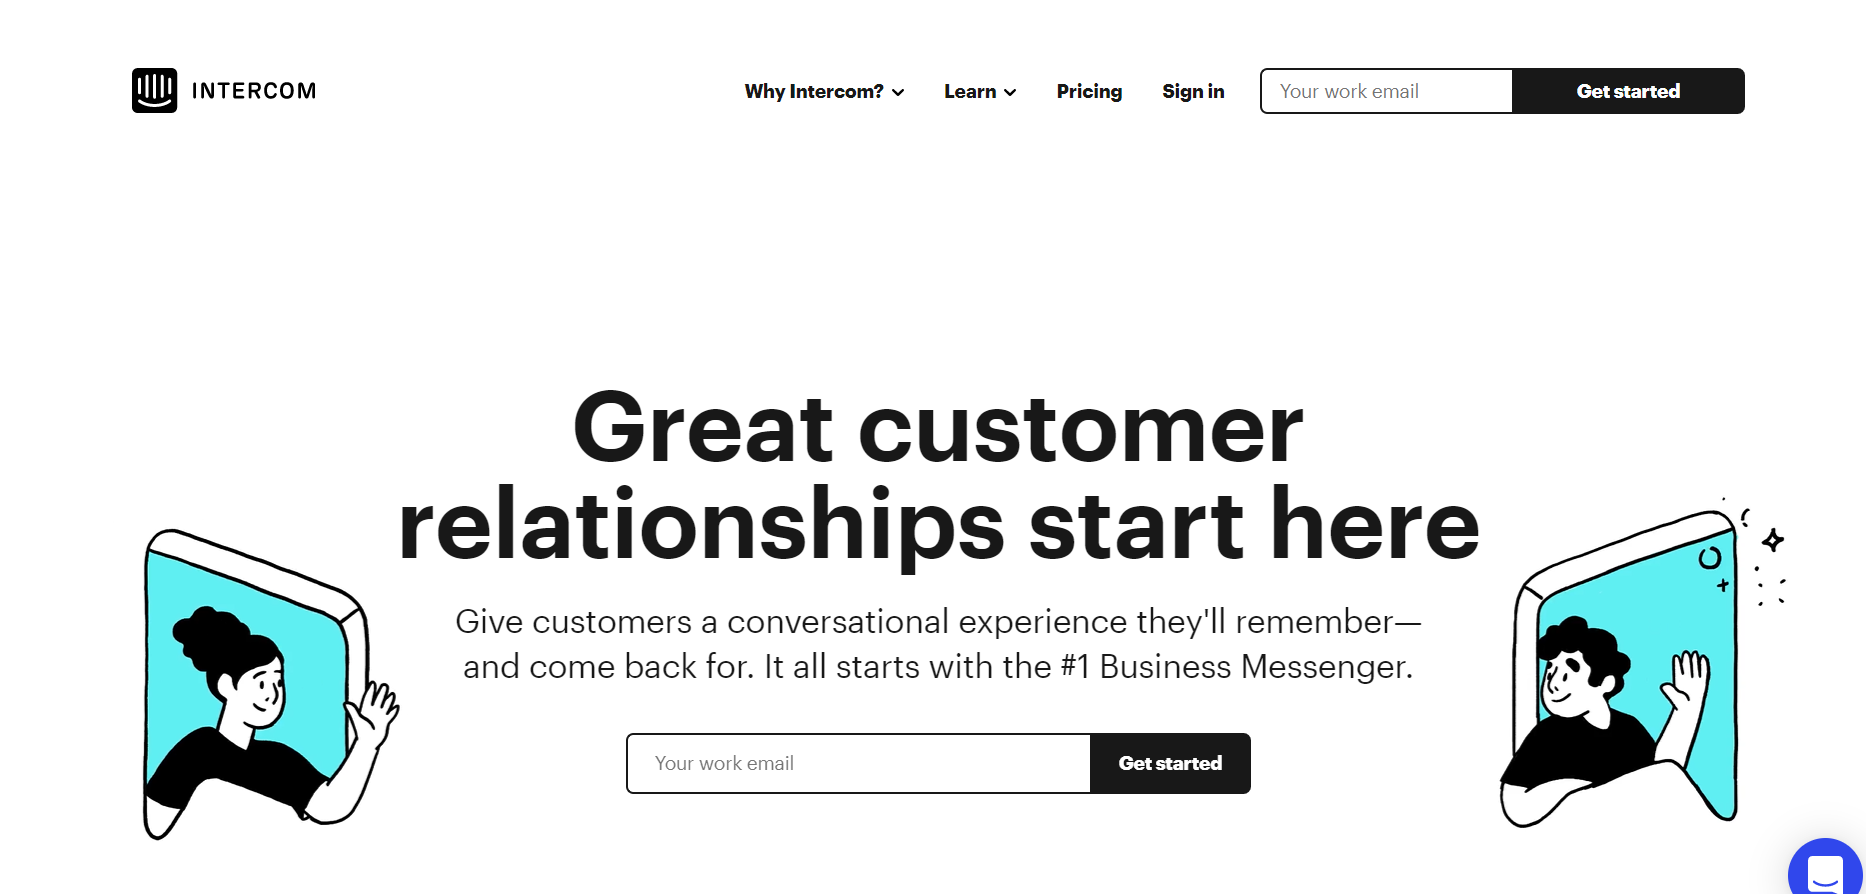 Intercom: Live chat software